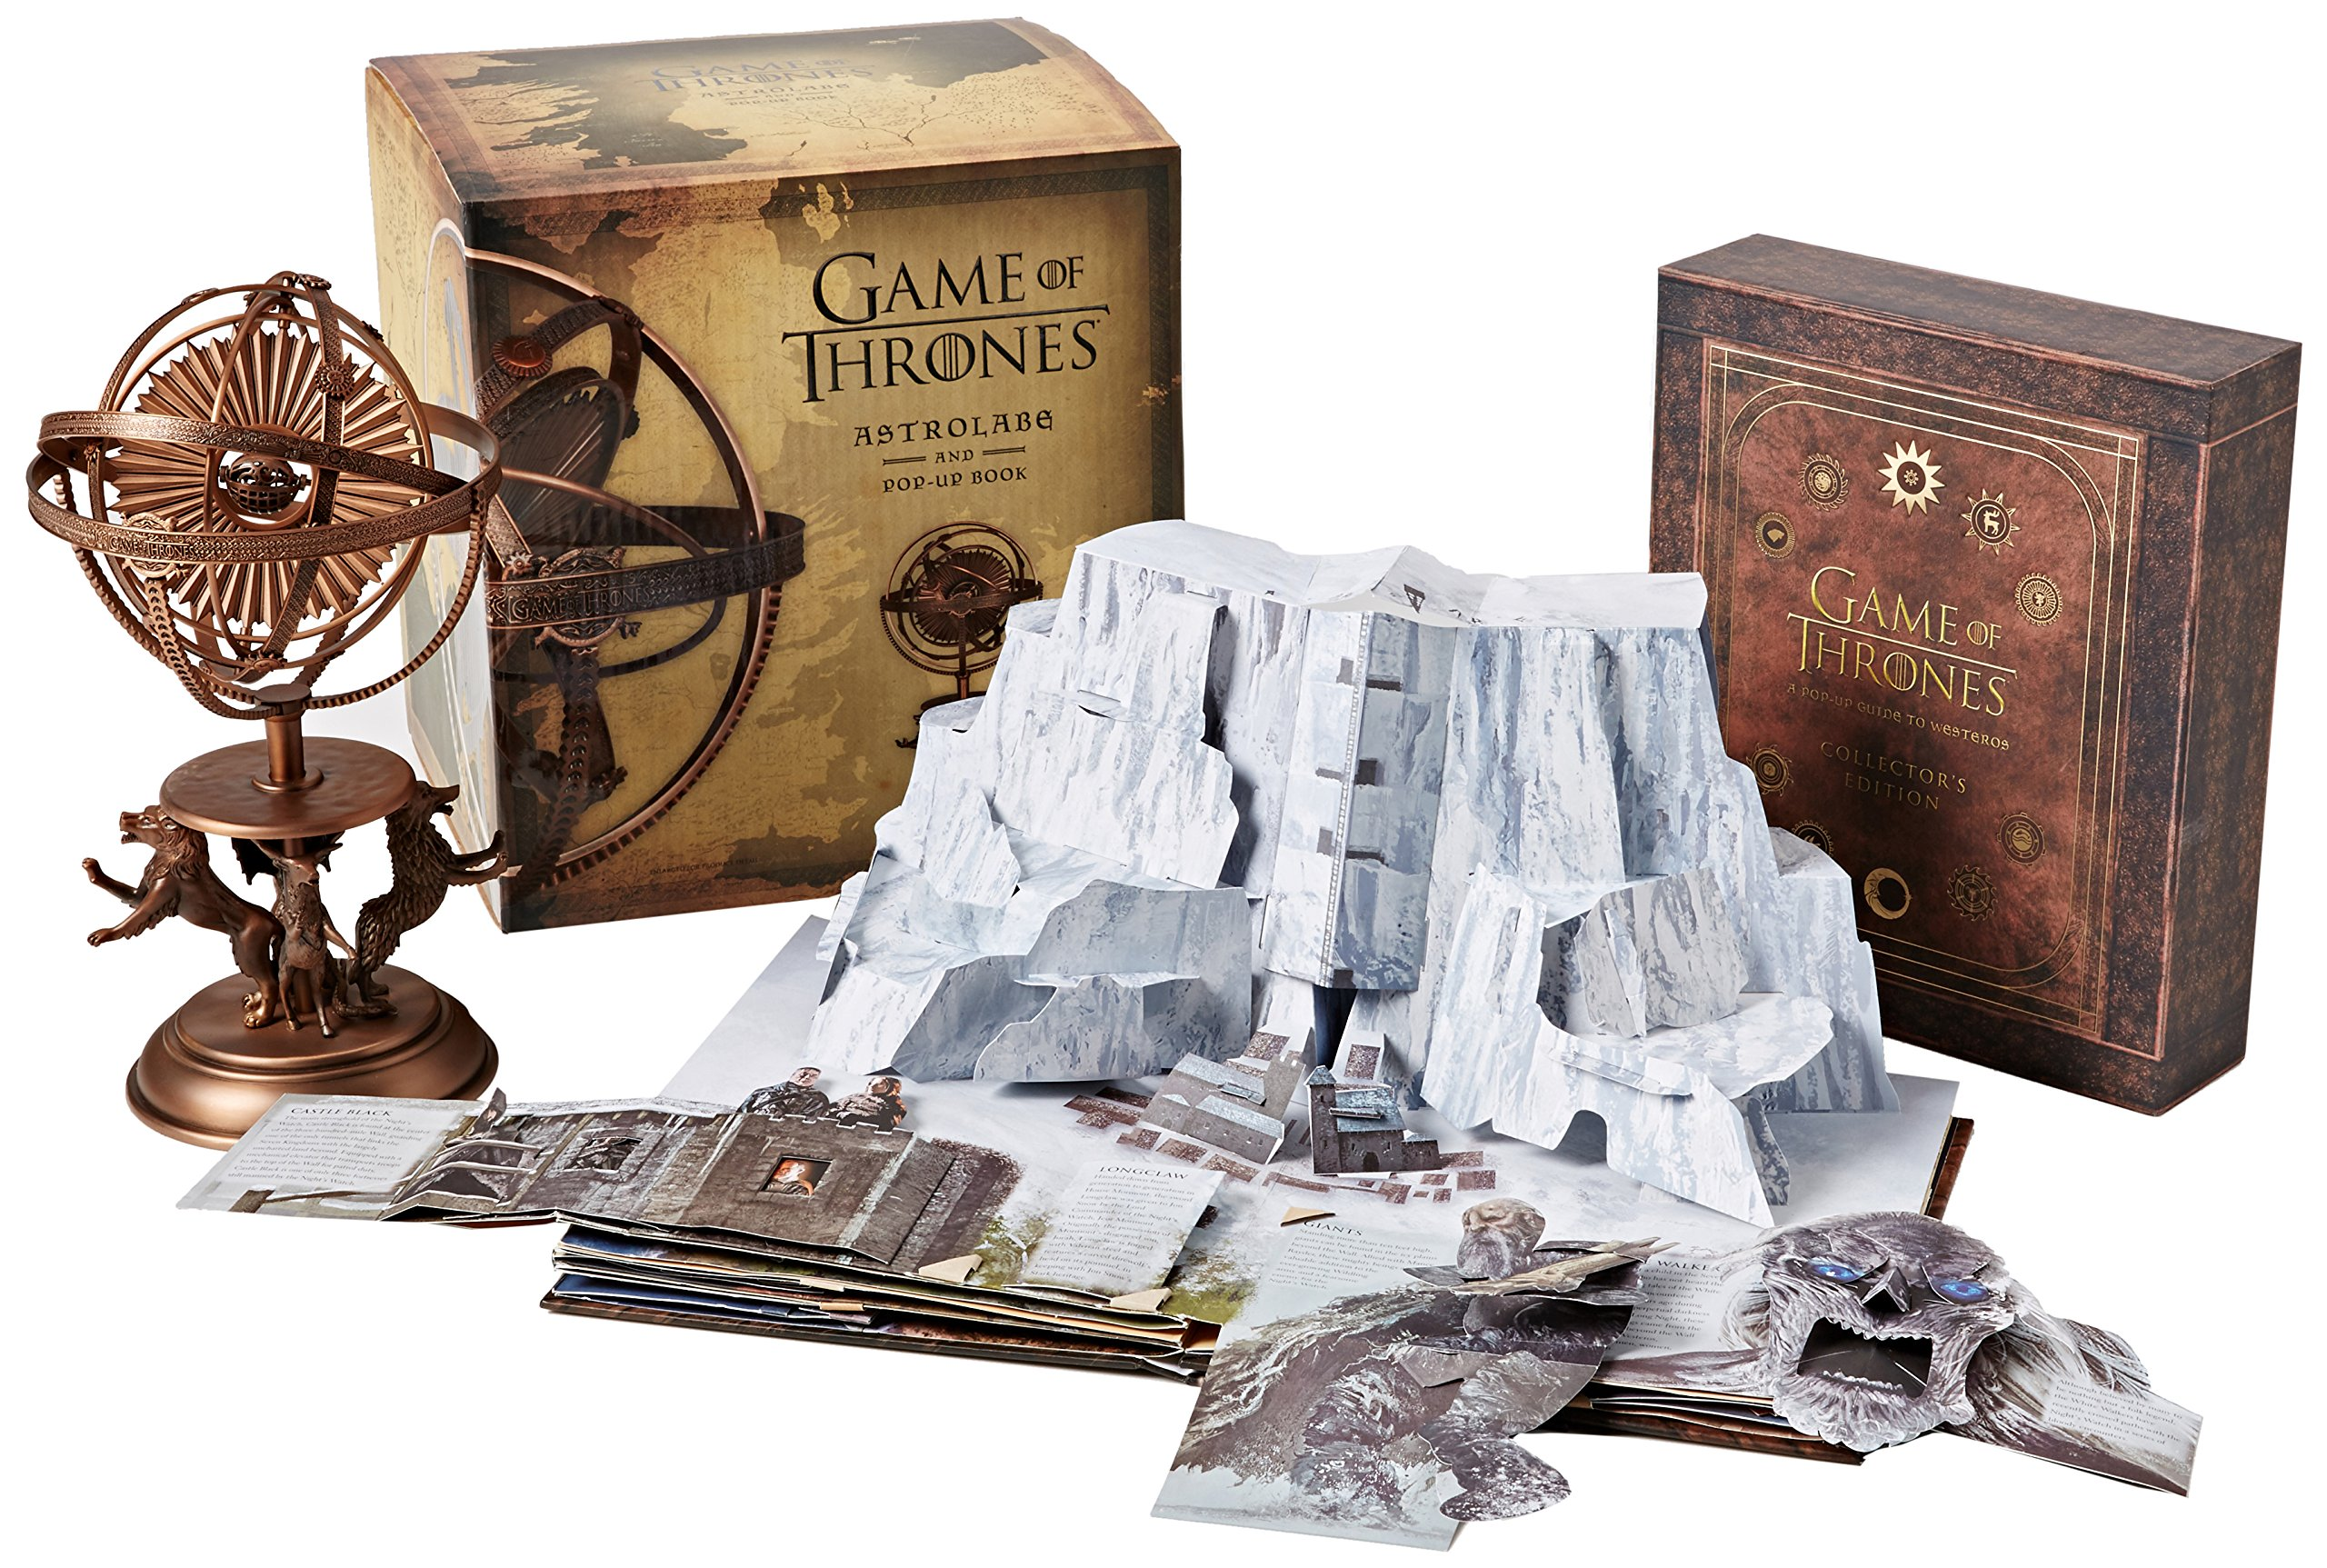 Game Of Thrones Astrolabe Collectors Edition Book Set Amazoncouk Matthew Reinhart 9781608874736 Books